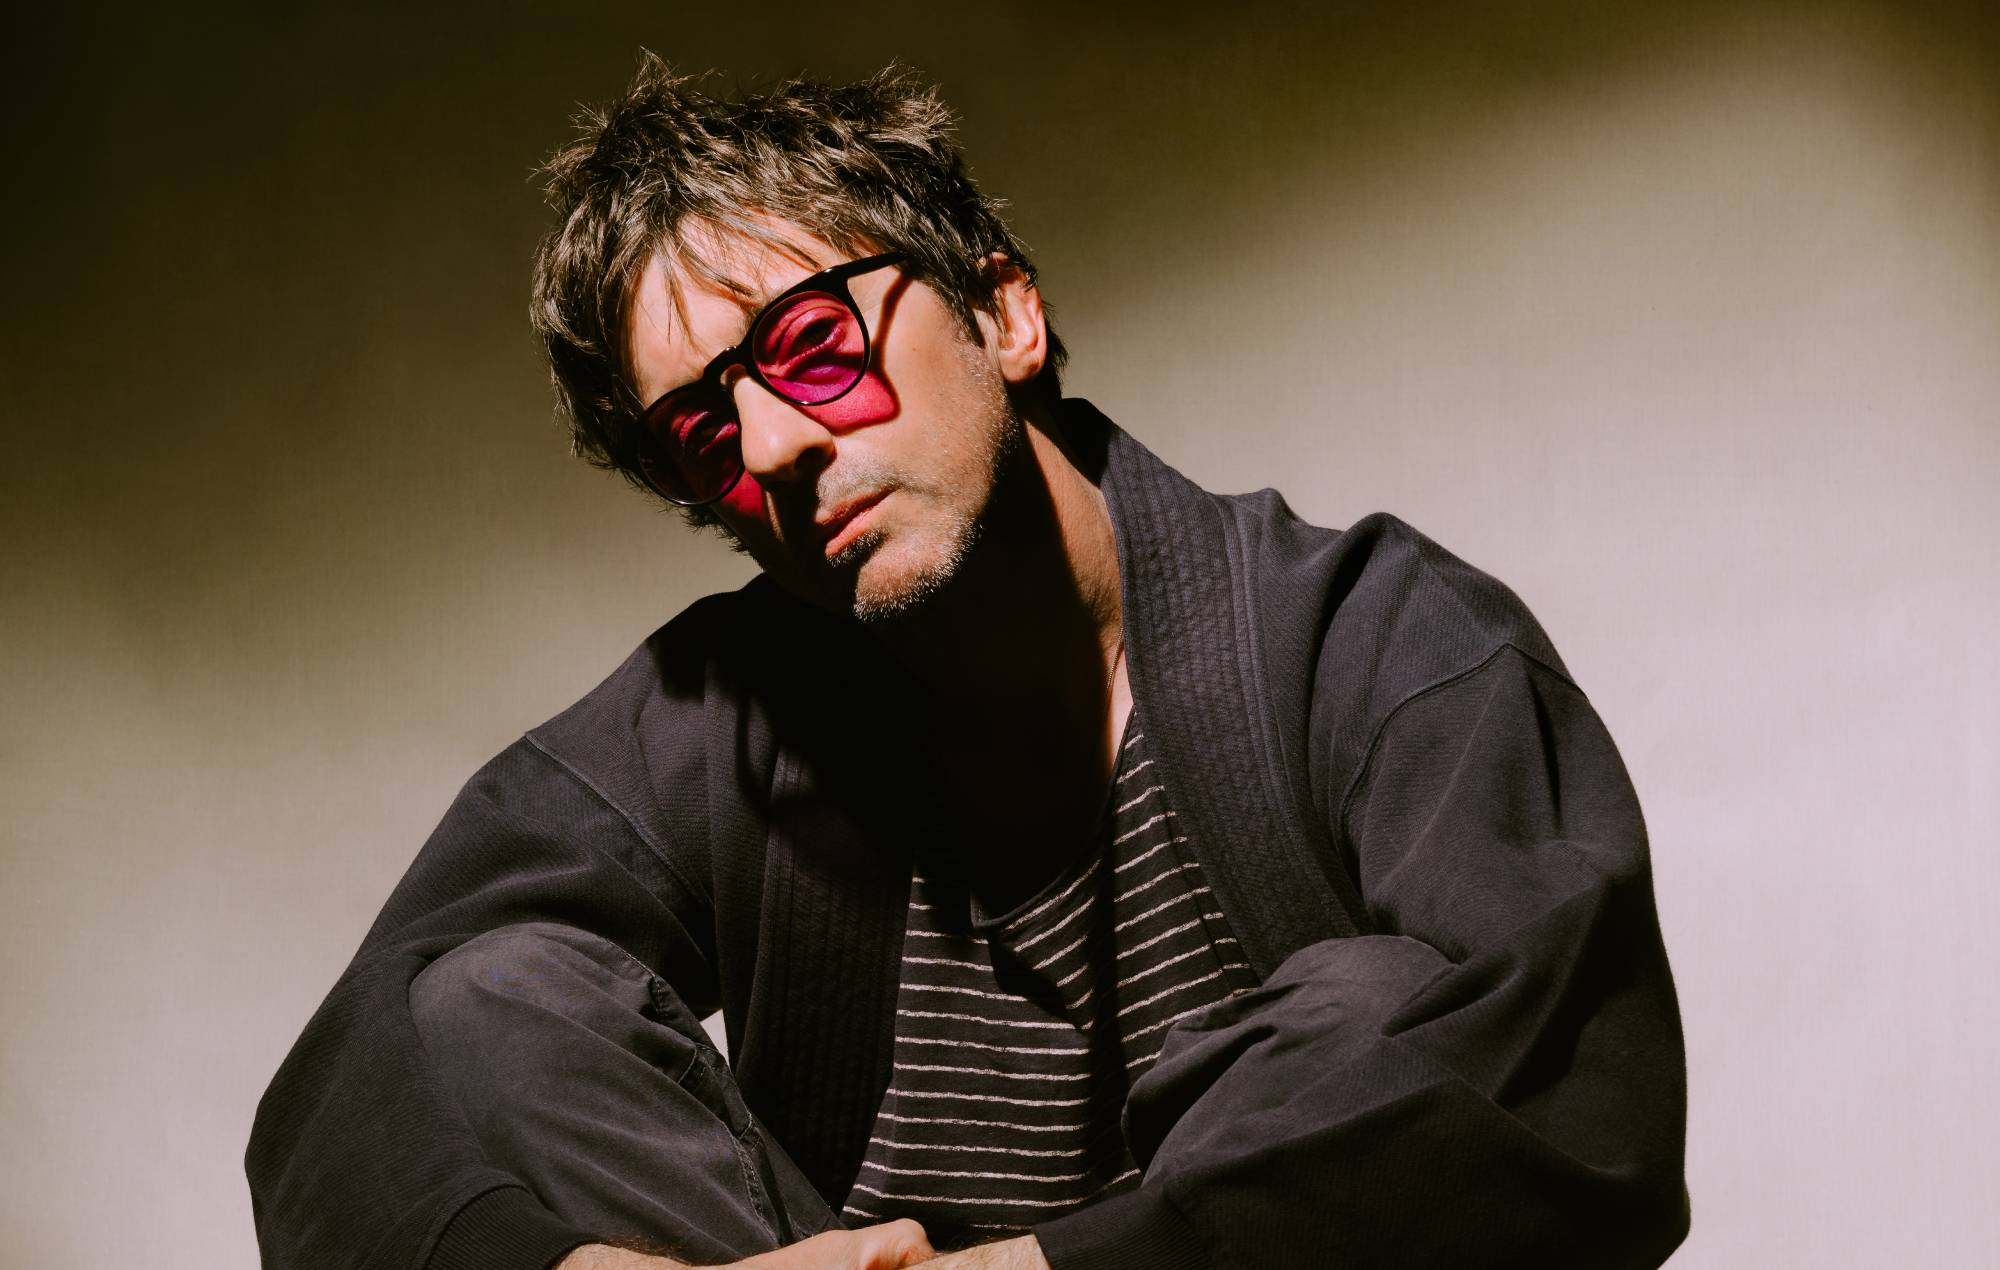 Graham Coxon returns with ambitious new project 'Superstate'. Credit: Joshua Atkins